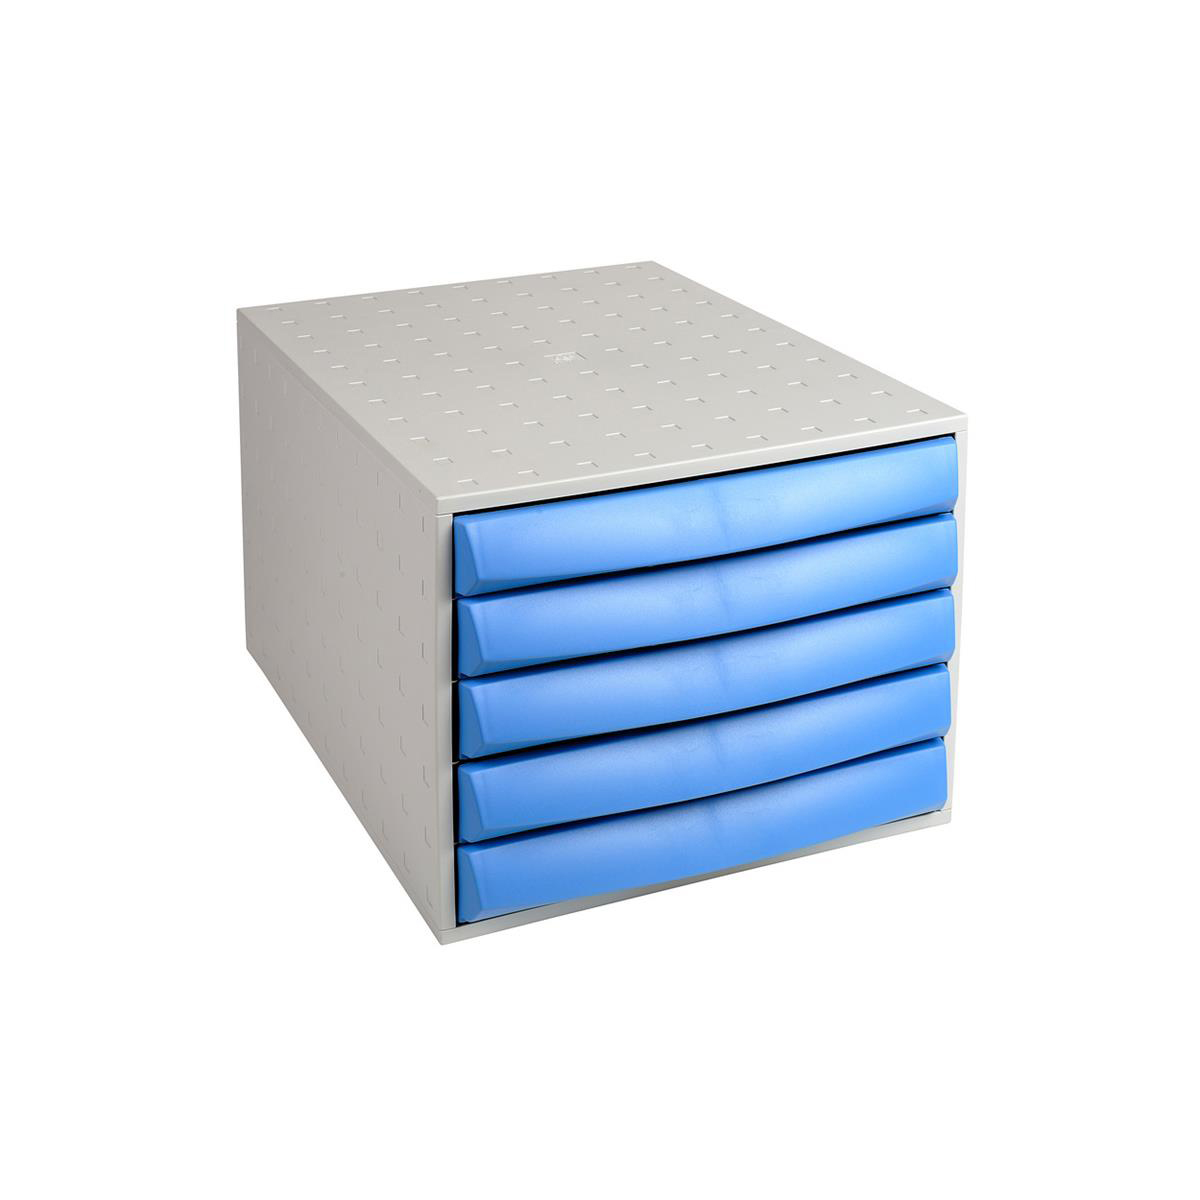 Exacompta Drawer Set Plastic 5 Closed Drawers A4 Plus Grey/Ice Blue